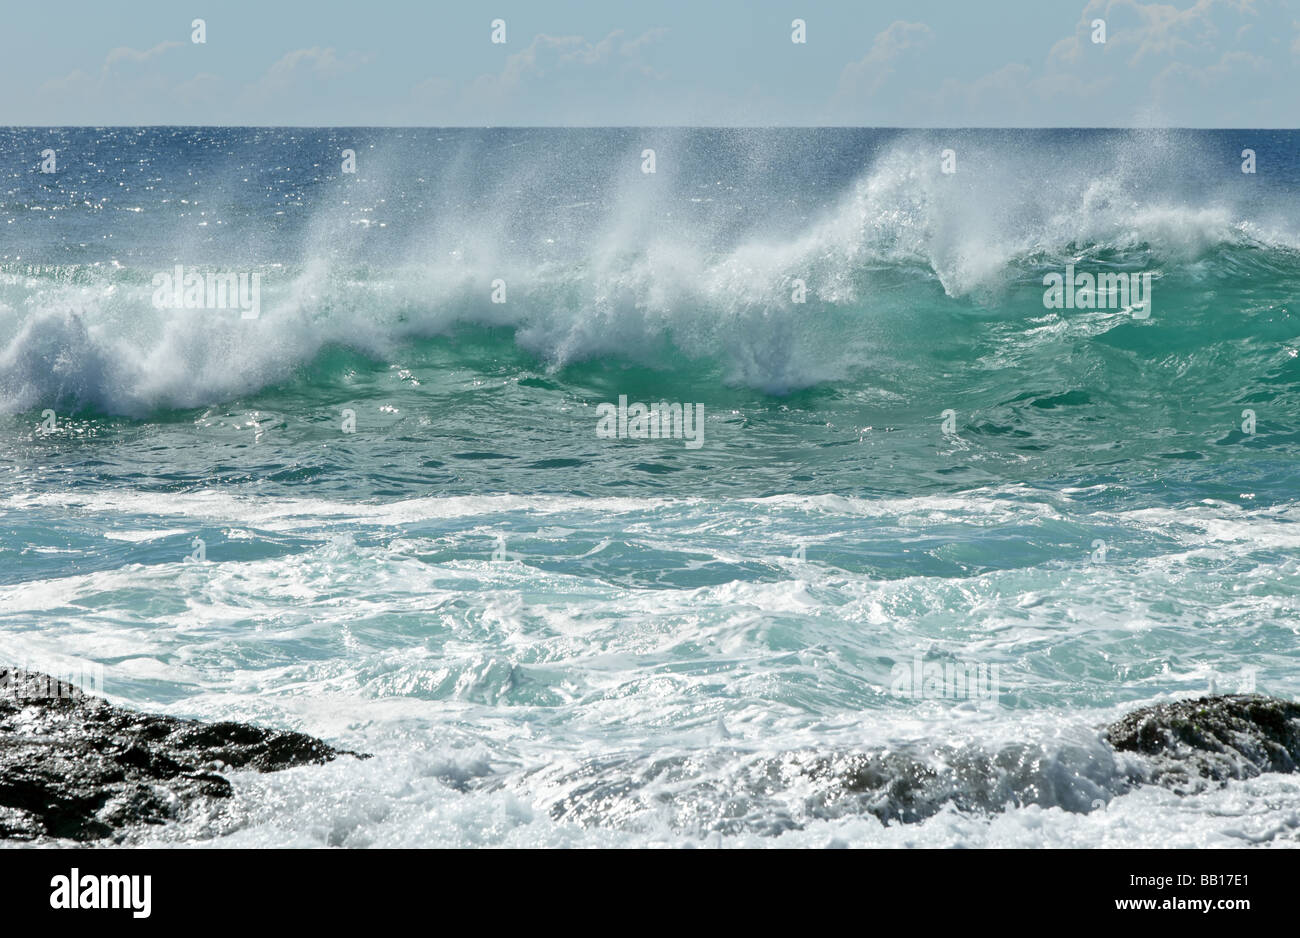 Waves breaking near rocks - Stock Image